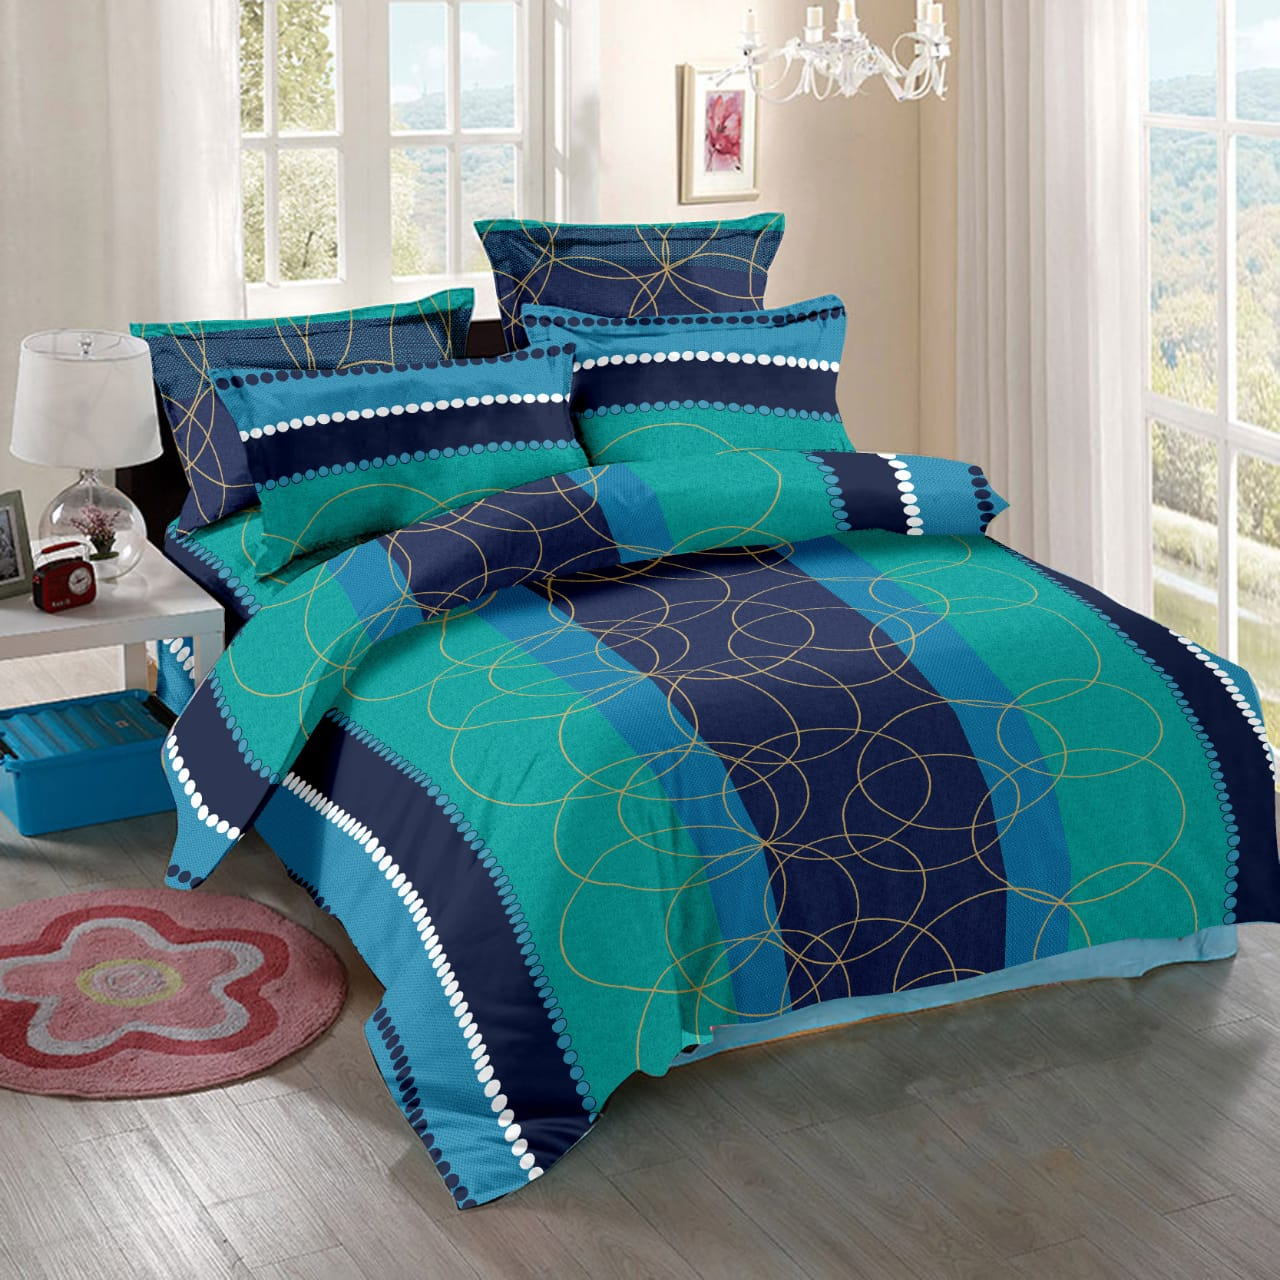 https://img1a.flixcart.com/images-jj7givk0/2018/6/5/bedsheet/MELODY-DOUBLE-BOMBAY-DYING-3/IMAF6U6YUGS8X9WH.jpg